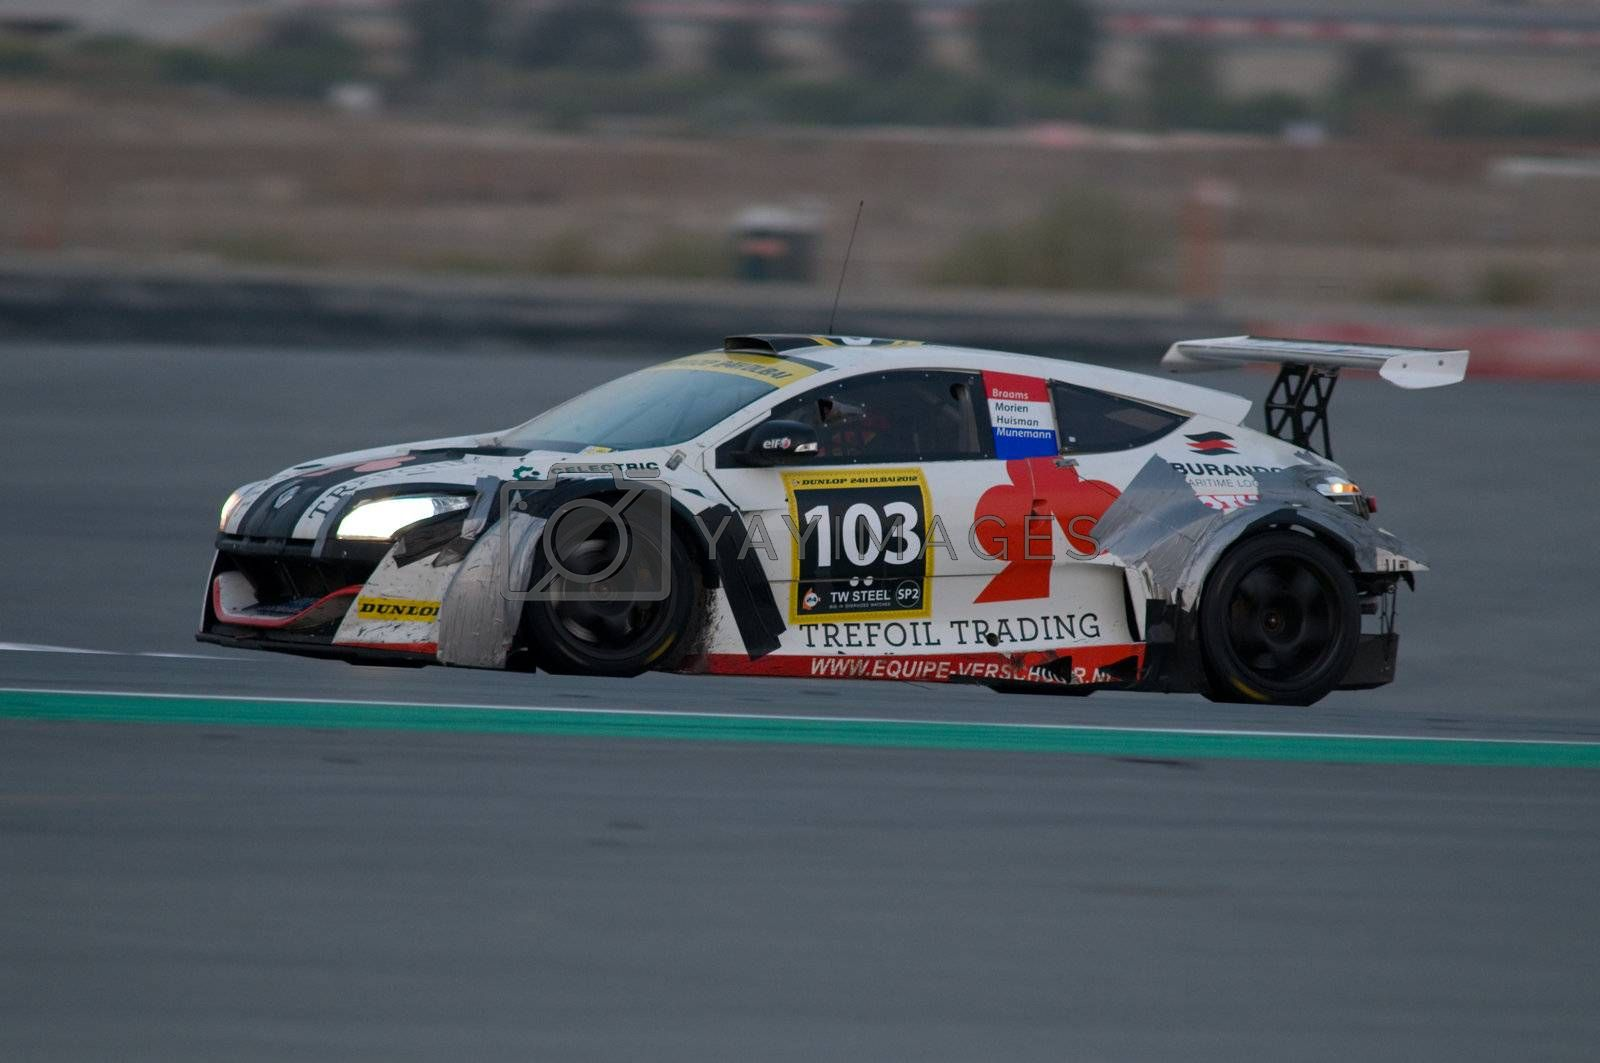 DUBAI - JANUARY 14: Car 103, a Renault Megane Trophy, during the morning hours of the 2012 Dunlop 24 Hour Race at Dubai Autodrome on January 14, 2012.